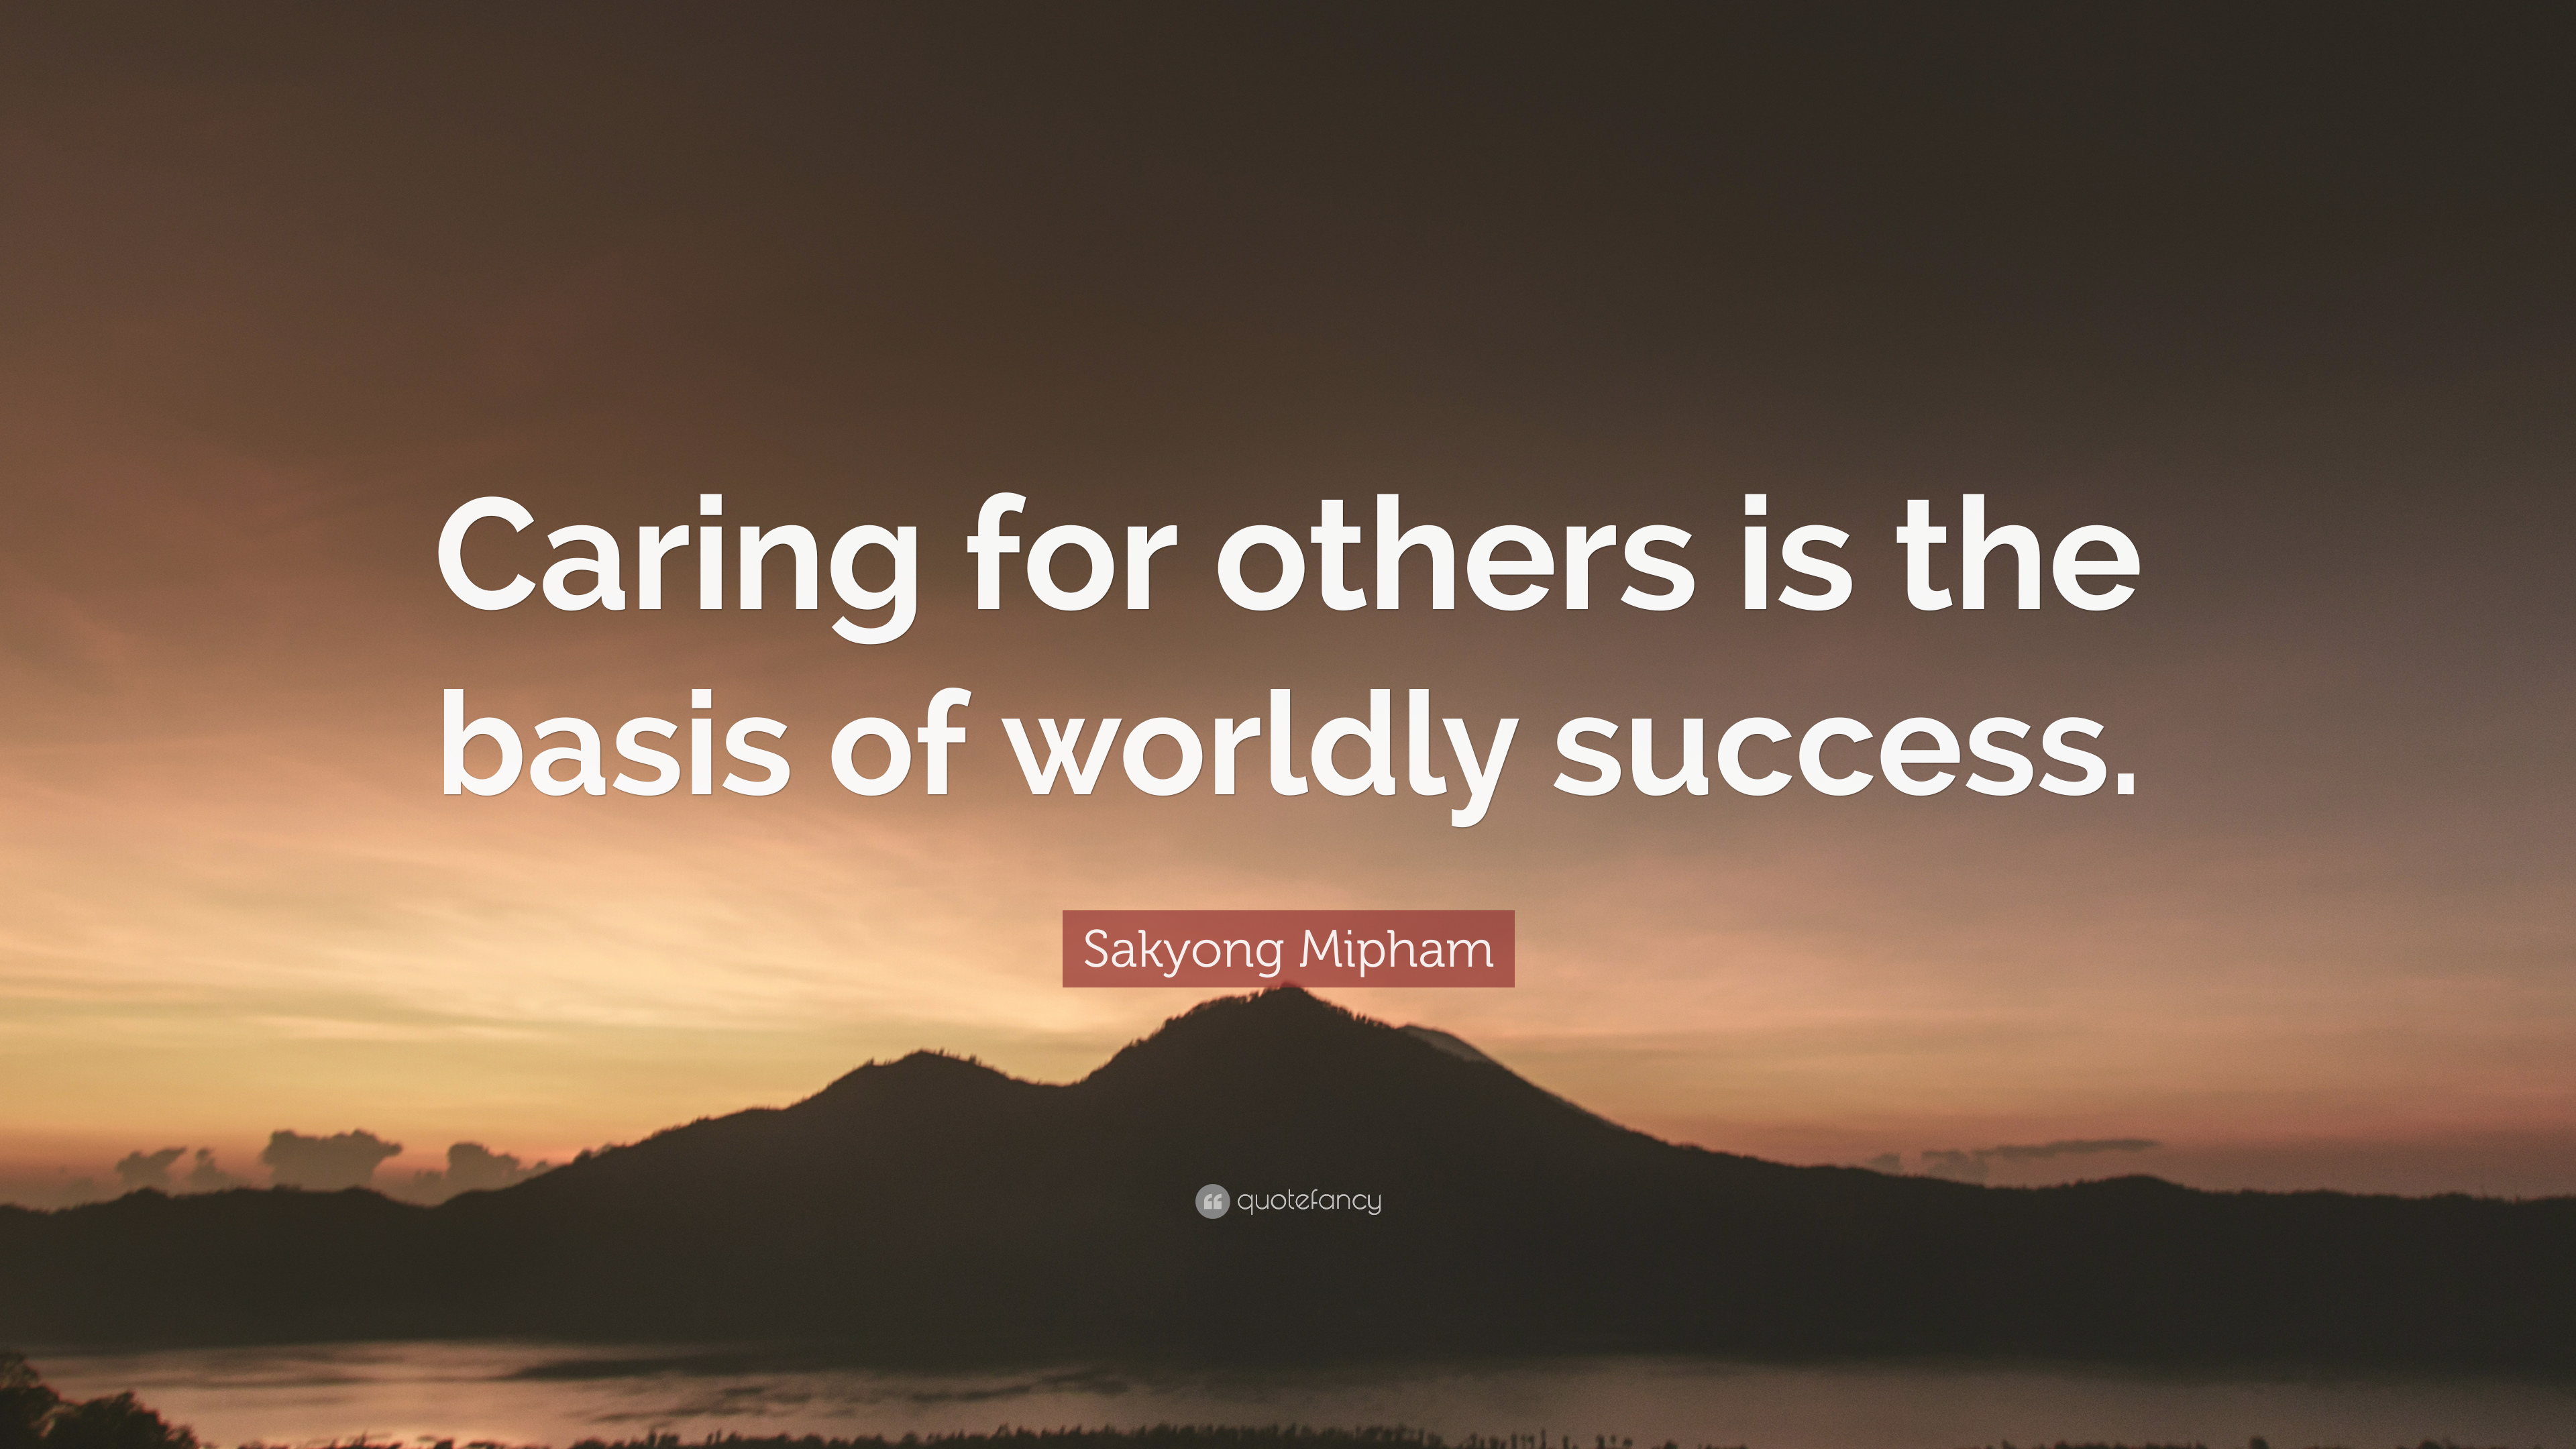 Sakyong Mipham Quote Caring For Others Is The Basis Of Worldly